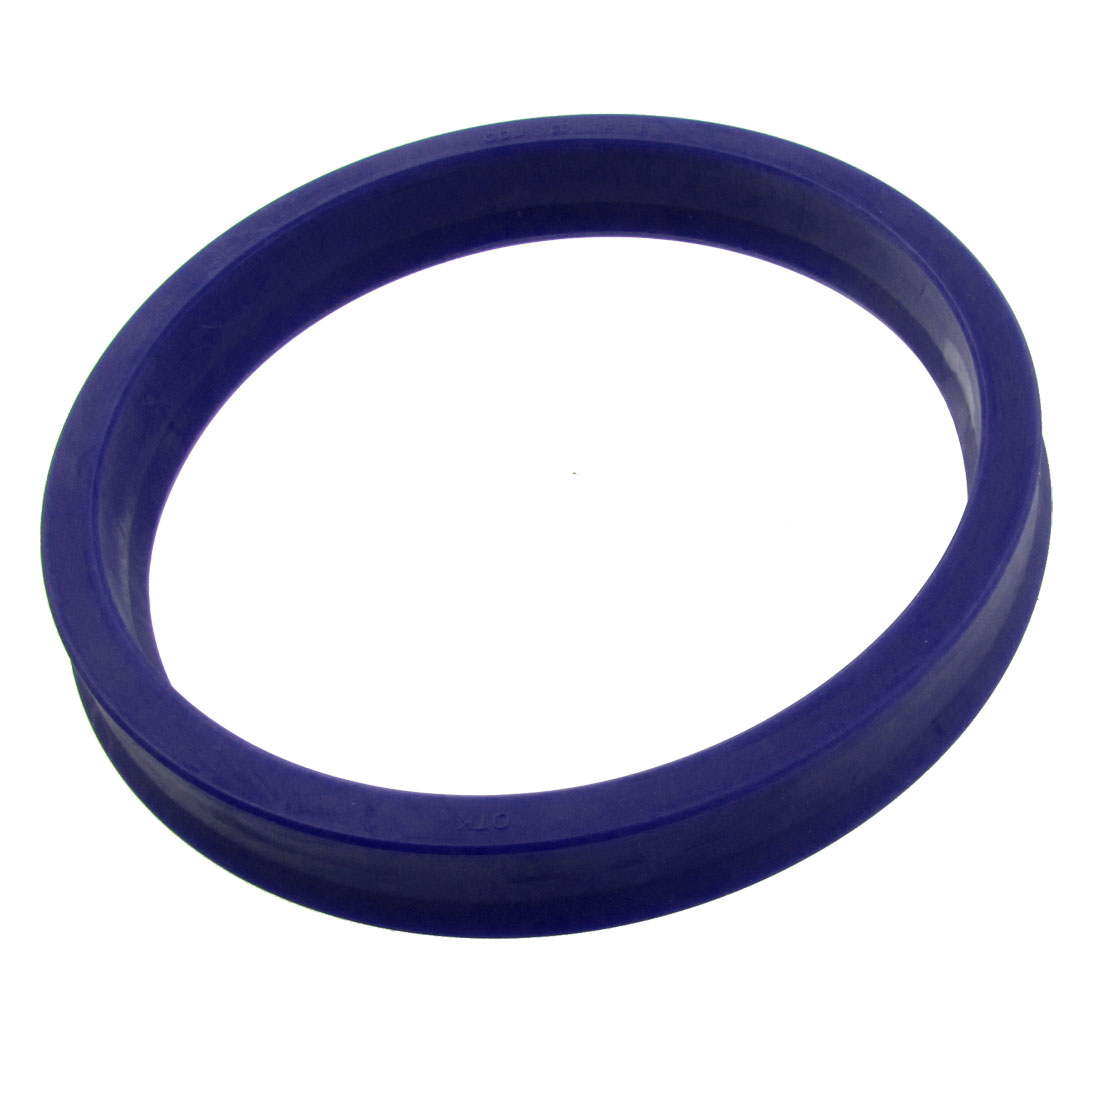 130mm x 118mm x 14mm Blue Polyurethane Cylinder Piston Oil Seal